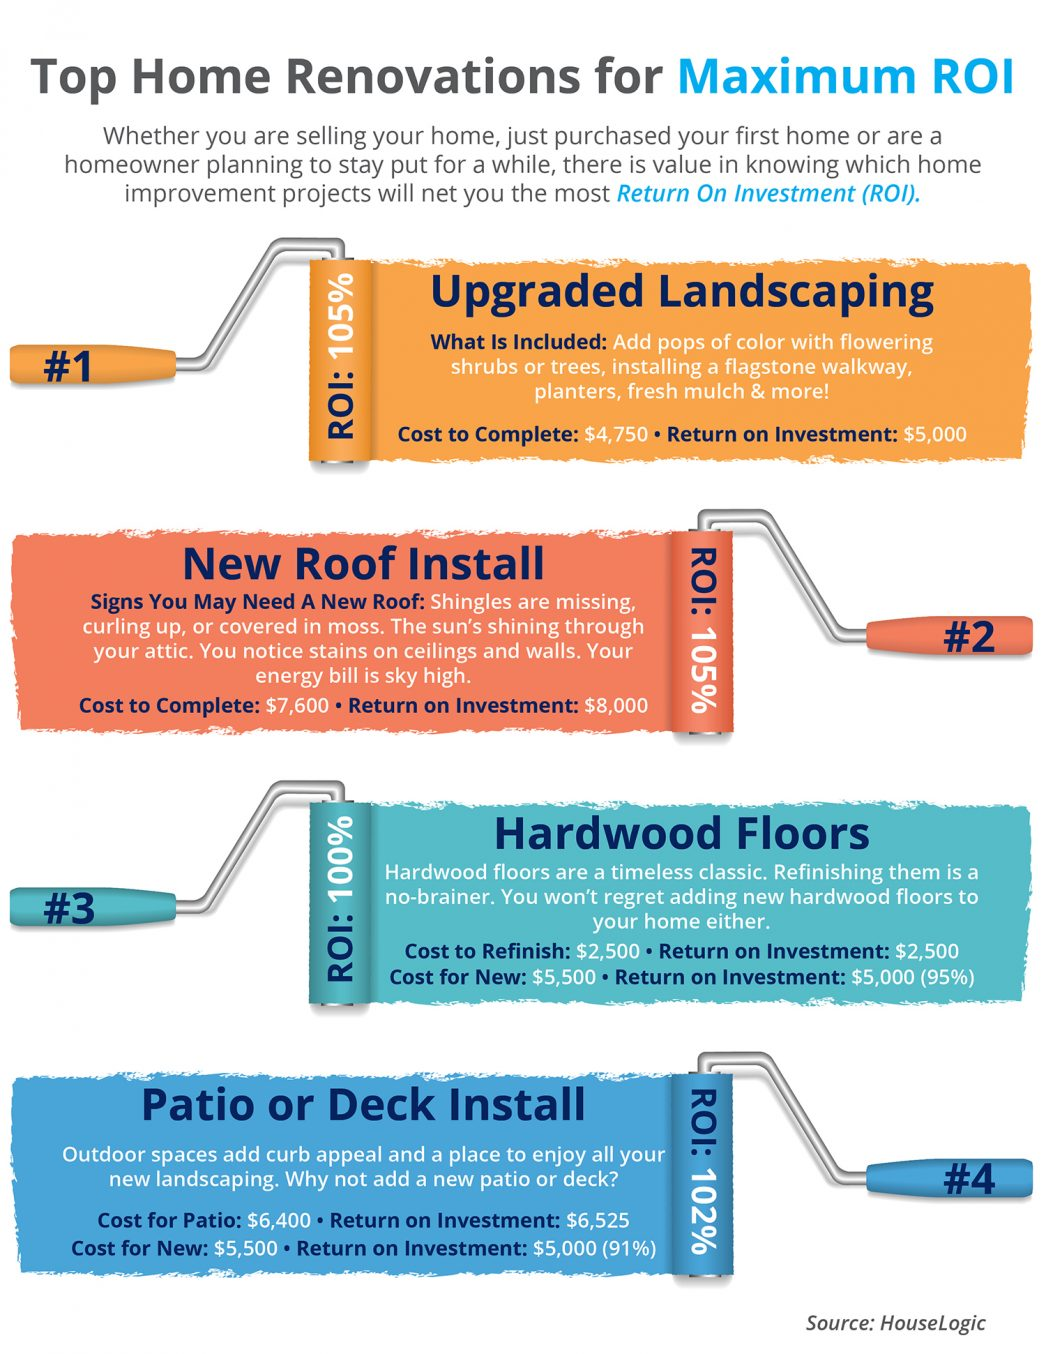 Top Home Renovations for Maximum ROI [INFOGRAPHIC] | MyKCM